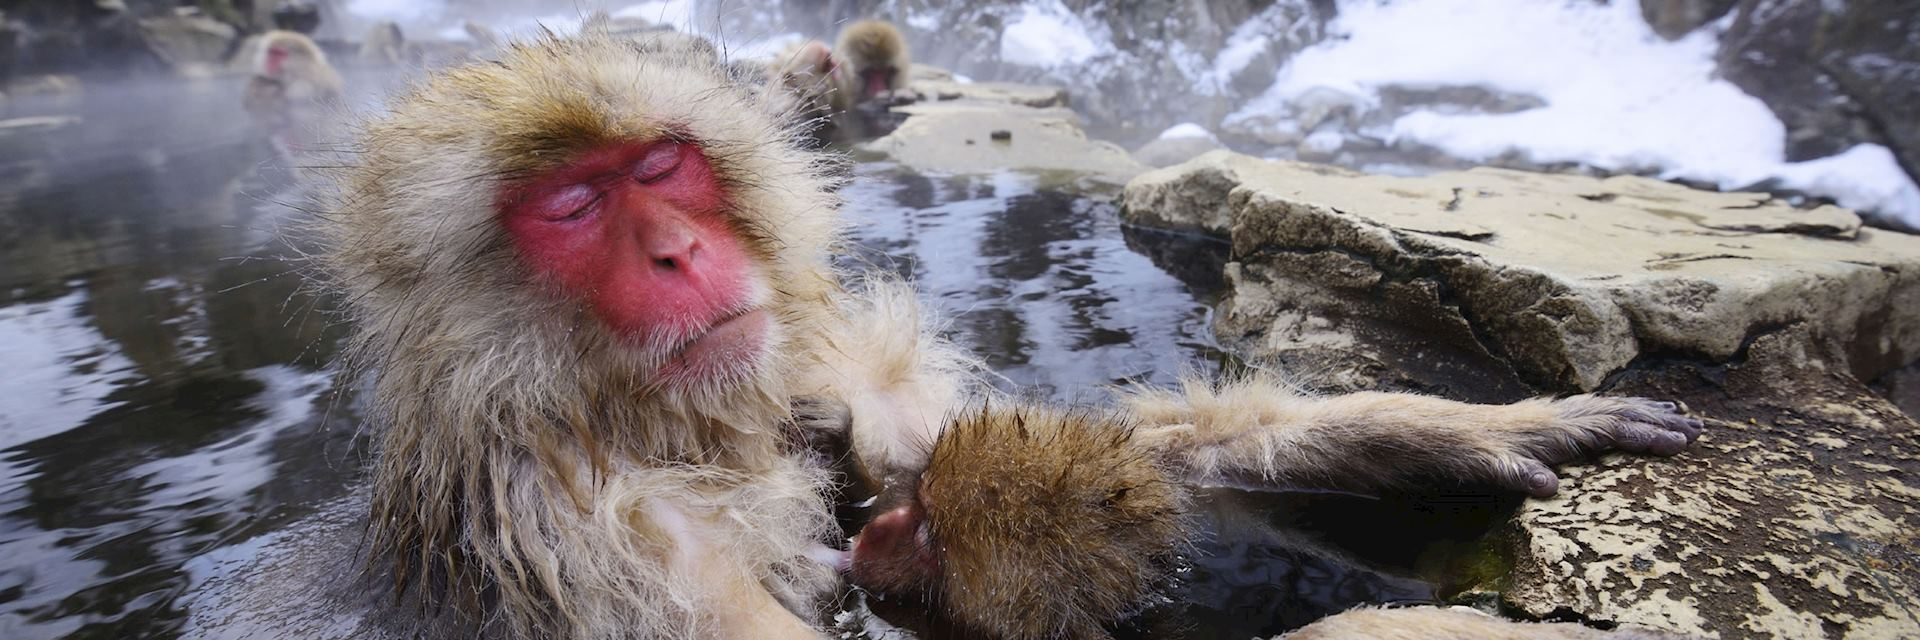 Snow monkeys relax in the hot springs of Yudanaka